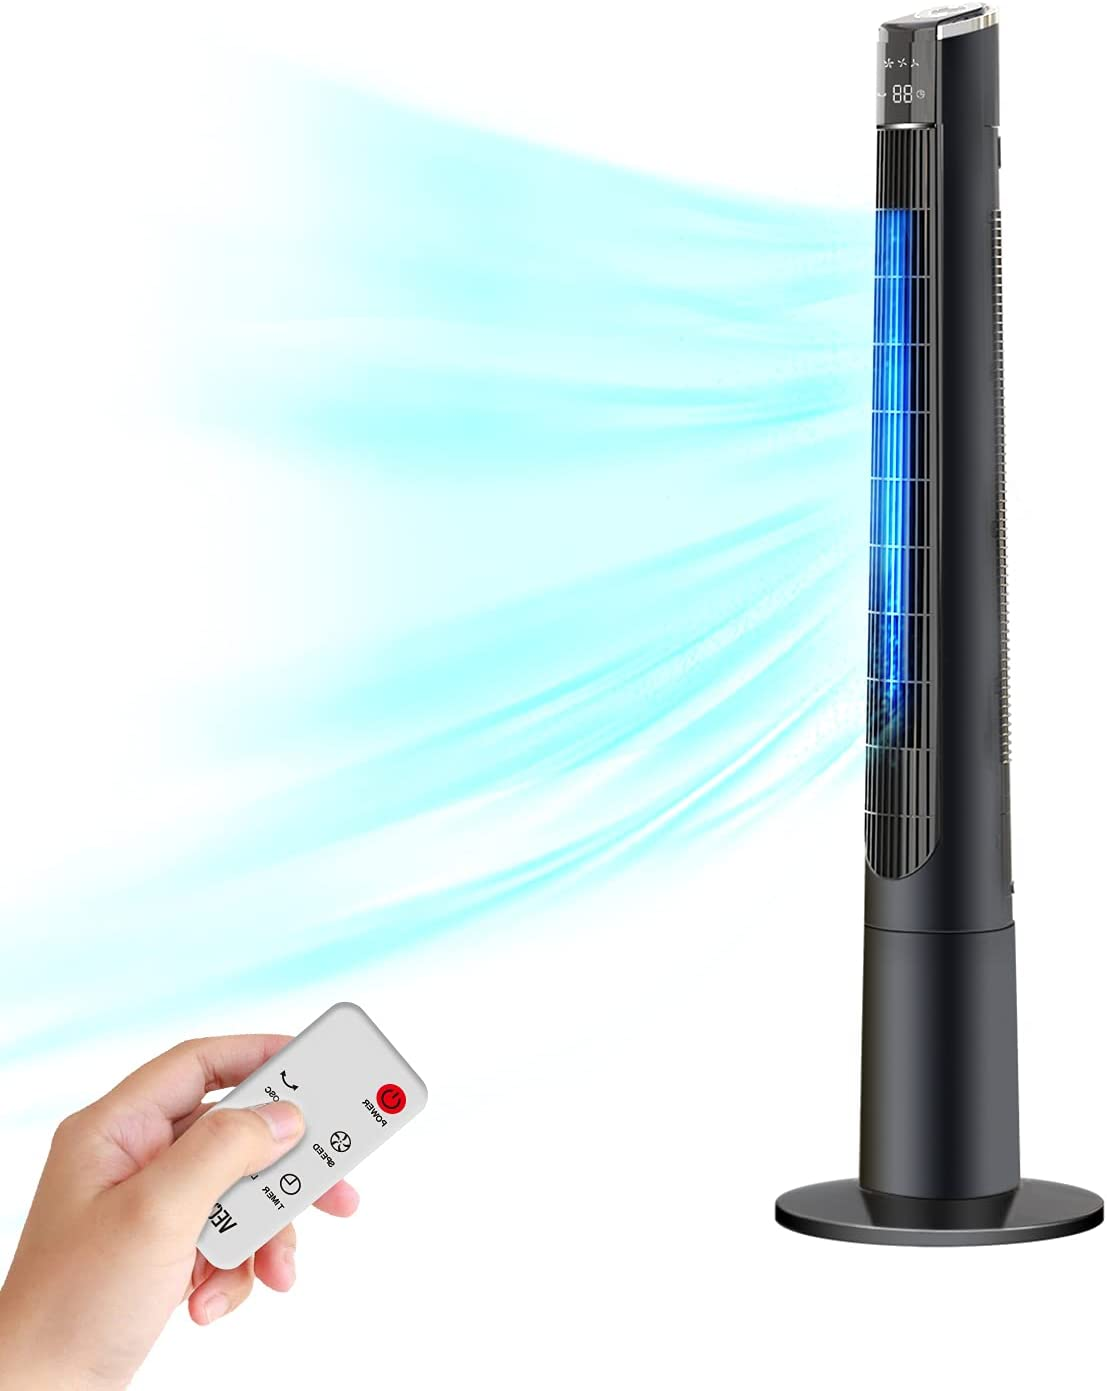 Tower Fan for Bedroom- 48'' Oscillating Fan with Remote, Cooling, Quiet, Large LED Display, 12-Hour Timer, Electric Black Standing Bladeless Fan for Whole House, Home, Office, Living Room